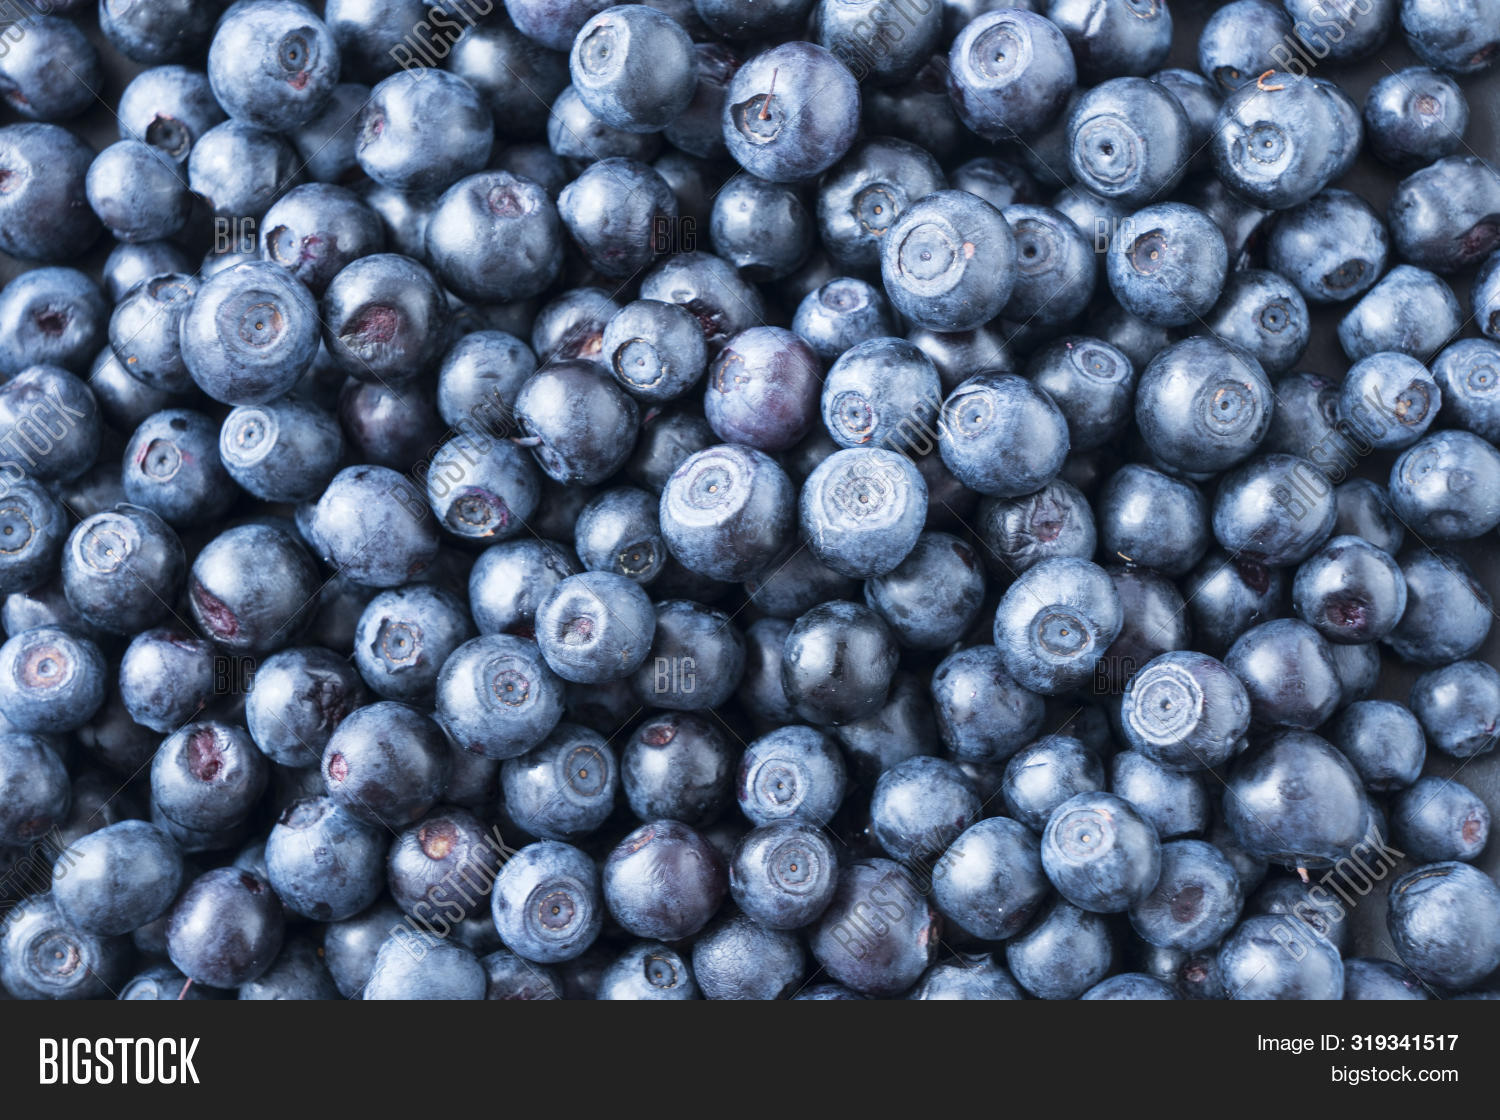 abundance,agricultural,agriculture,background,berry,bilberry,blue,blueberries,close,closeup,color,cooking,copy,crop,culinary,cut,cutout,delicious,diet,farmer,food,fresh,fruit,harvest,healthy,horticultural,horticulture,juicy,many,market,natural,nature,nobody,nutrition,organic,out,pattern,picked,plenty,produce,ripe,round,space,summer,summertime,sweet,up